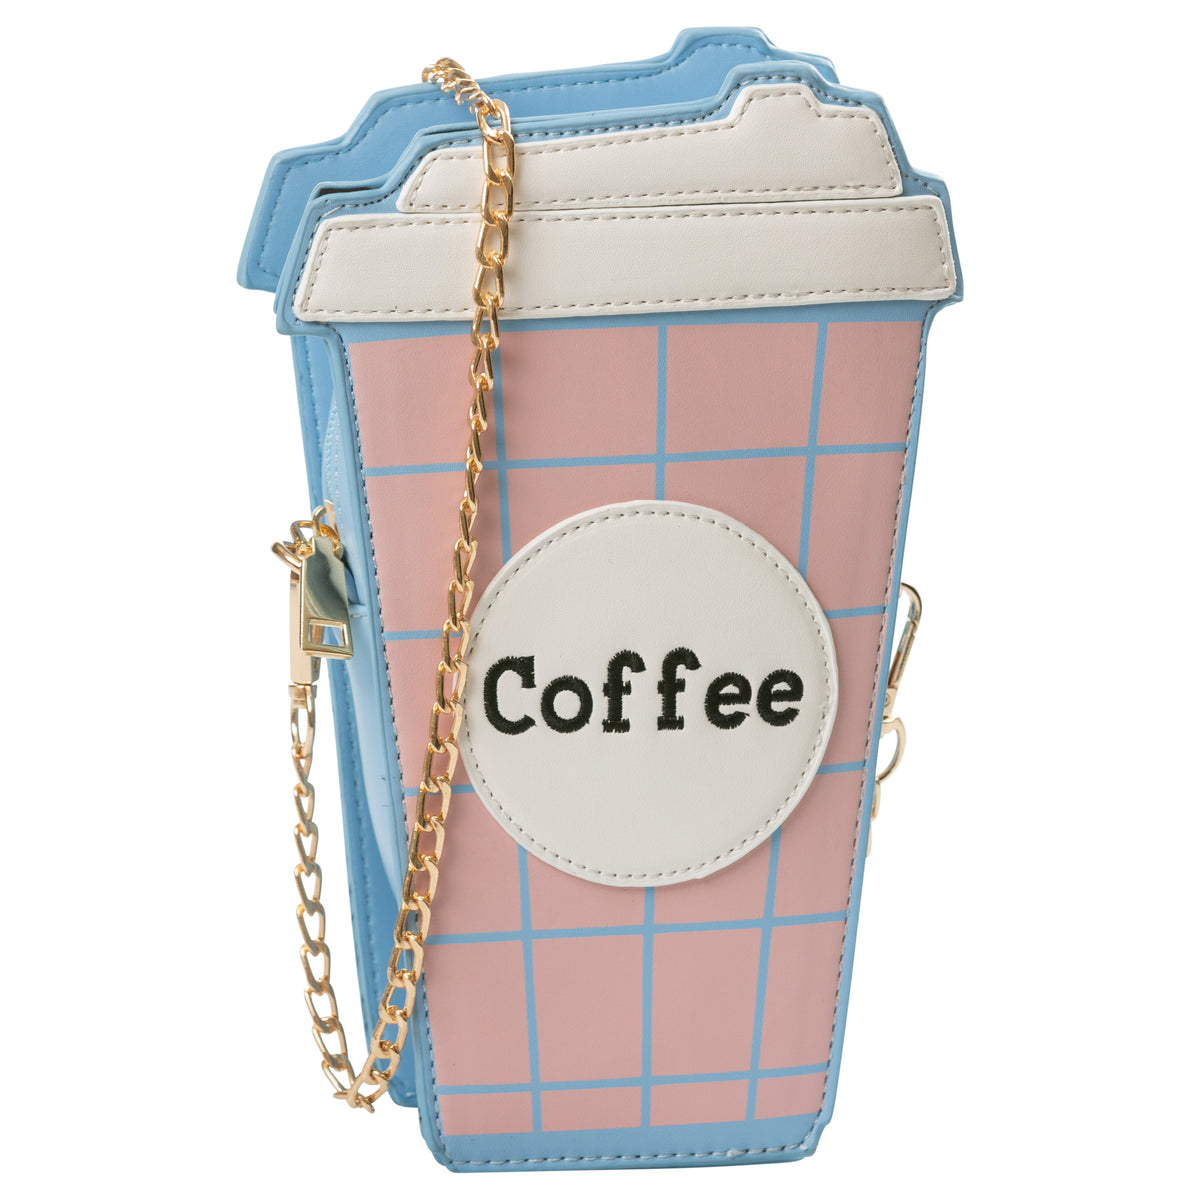 Coffee Handbag